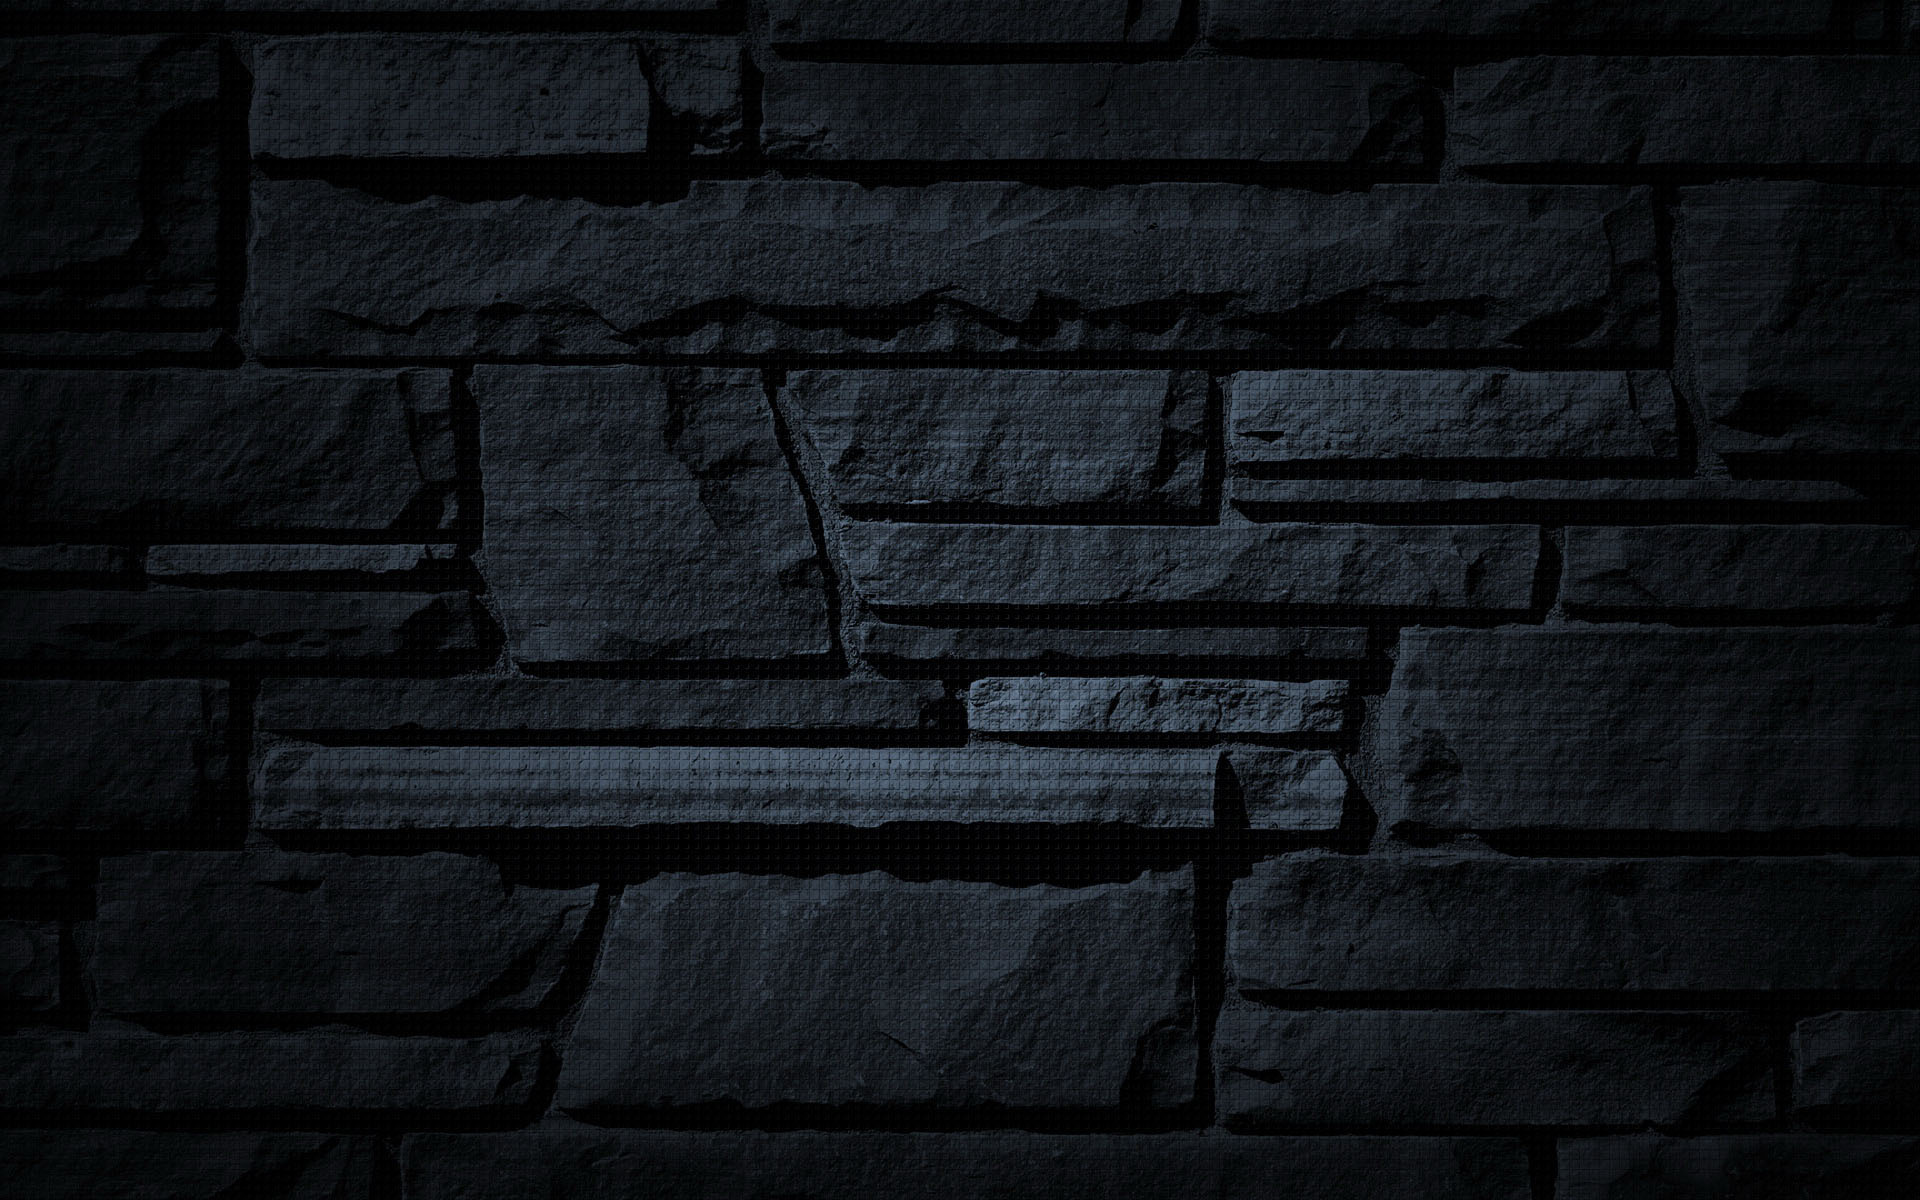 Black Wall Texture And Download Texture Black Stone Wall Texture ...